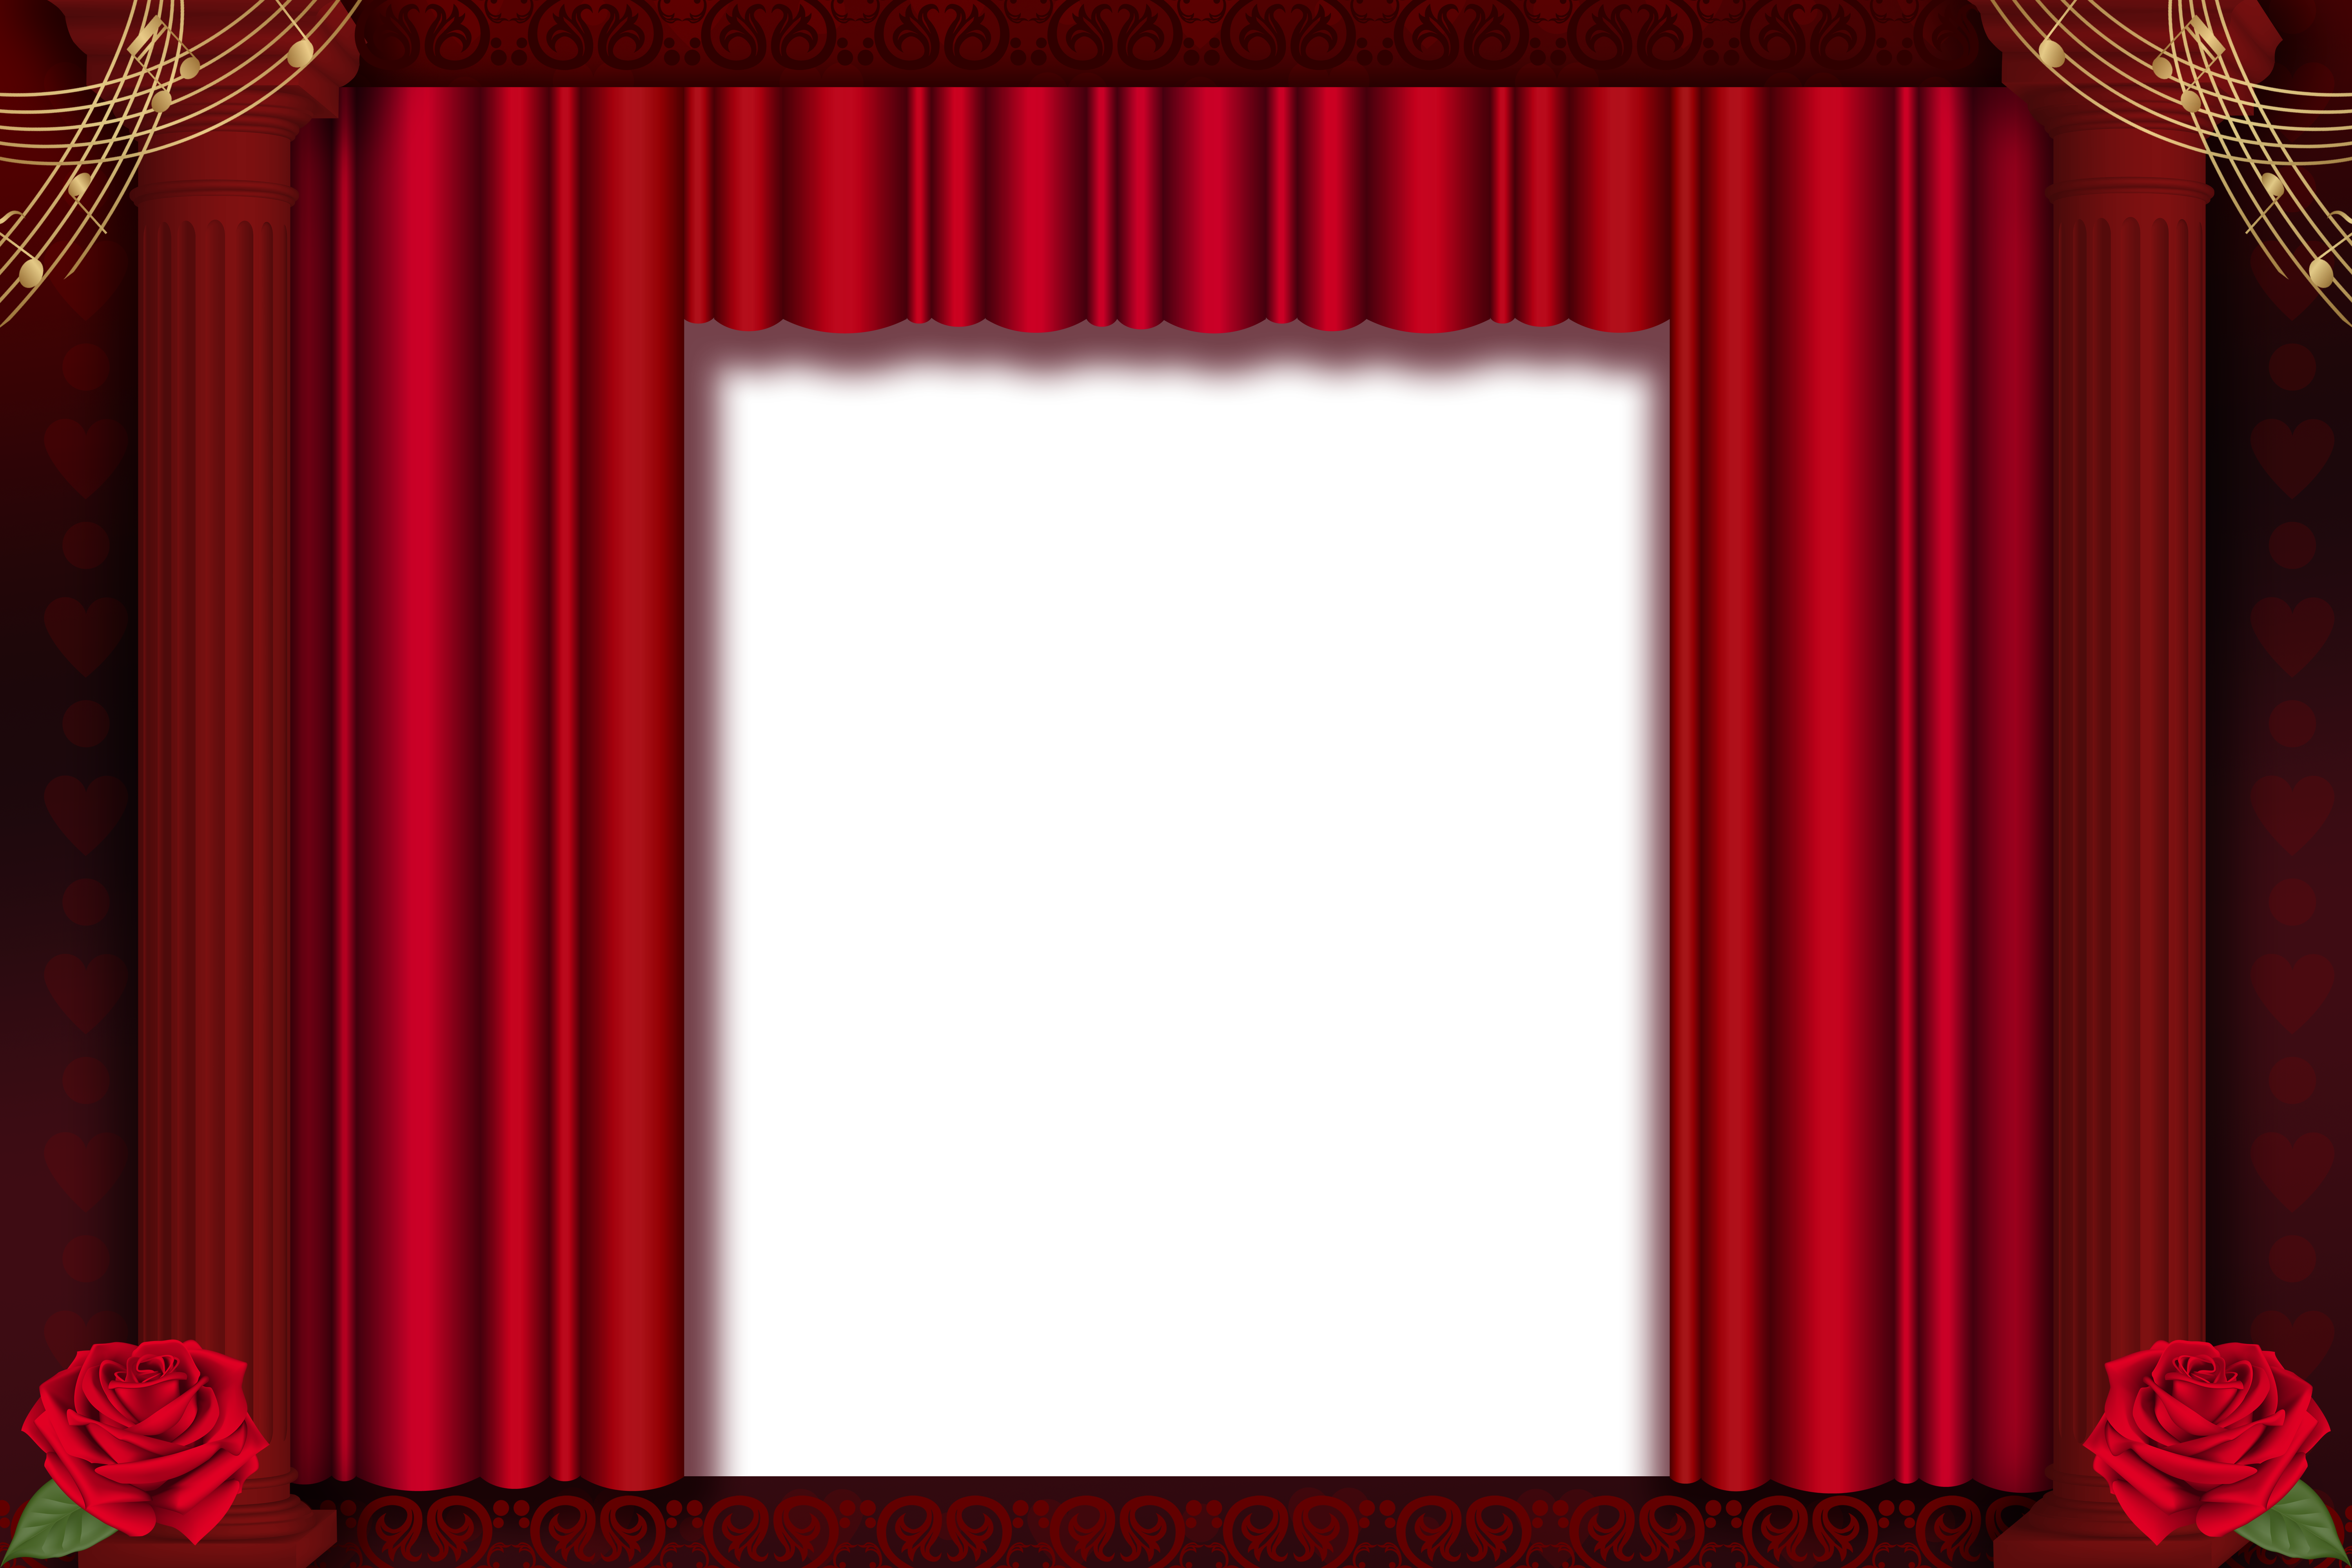 Curtains clipart gold light. Red transparent png frame